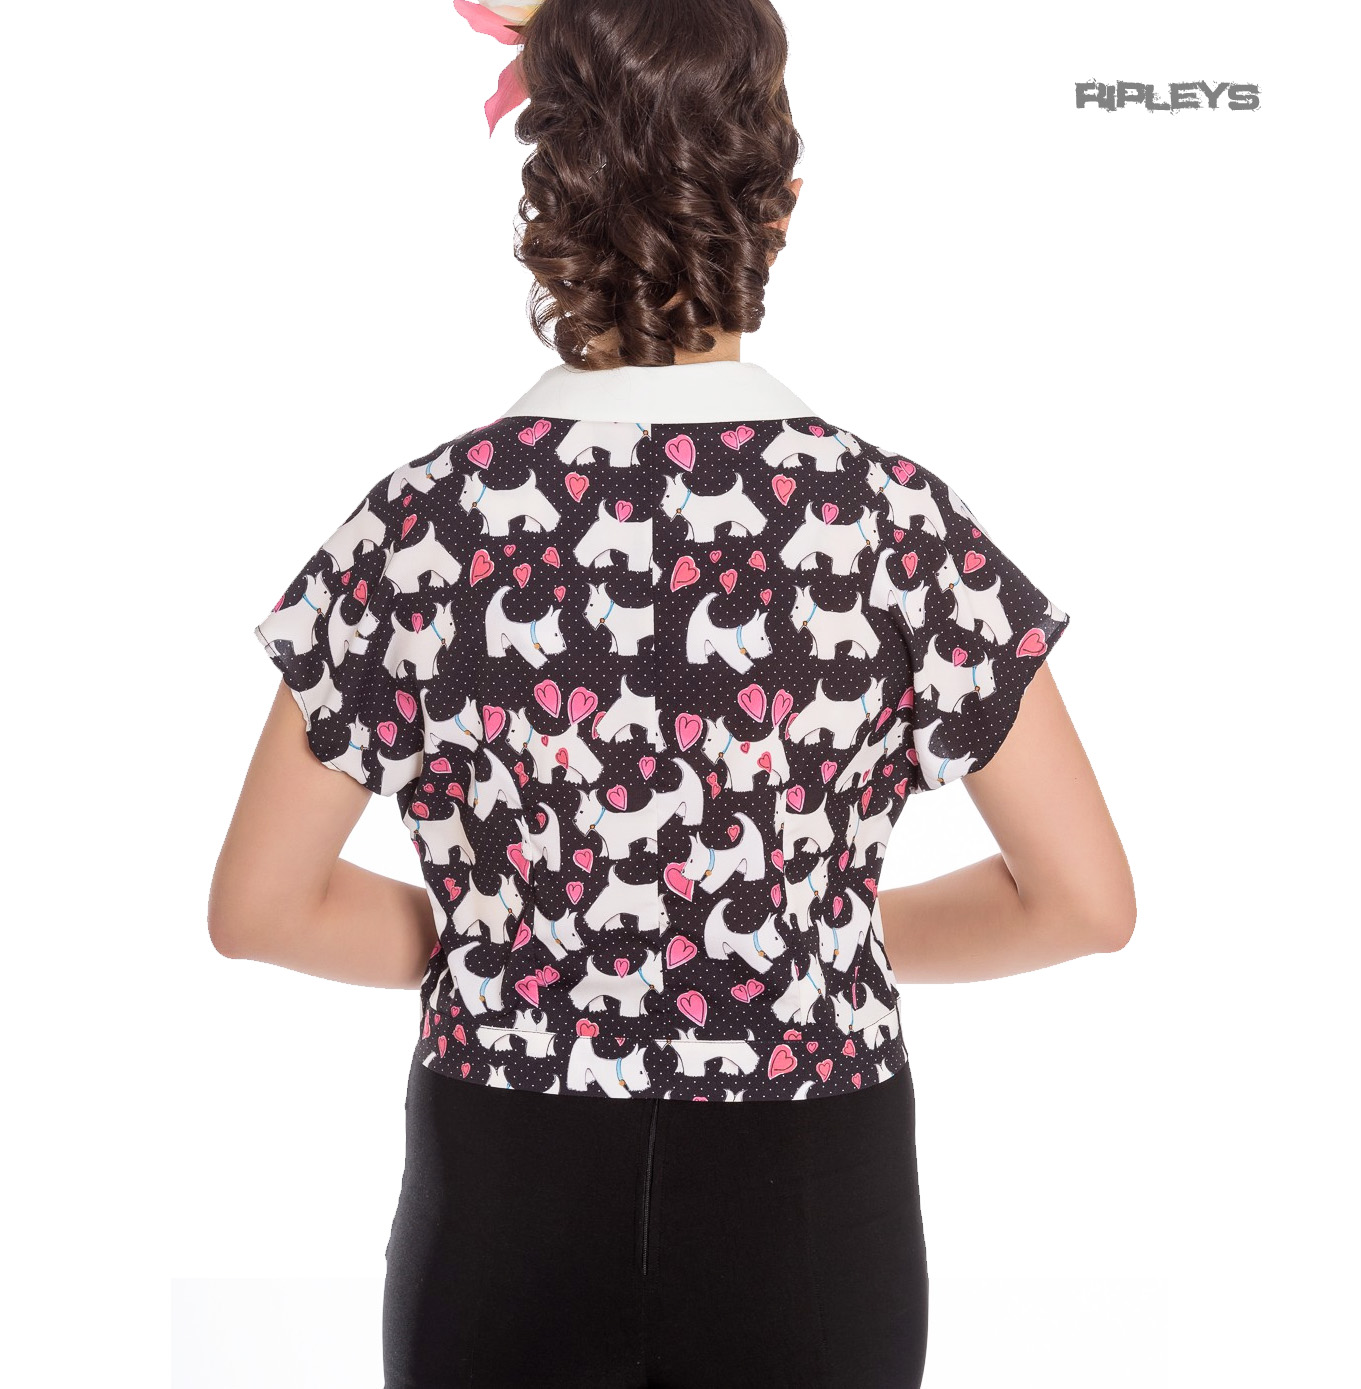 Hell-Bunny-50s-Retro-Top-Scottie-Dog-Heart-AGGY-Cropped-Blouse-Shirt-All-Sizes thumbnail 16